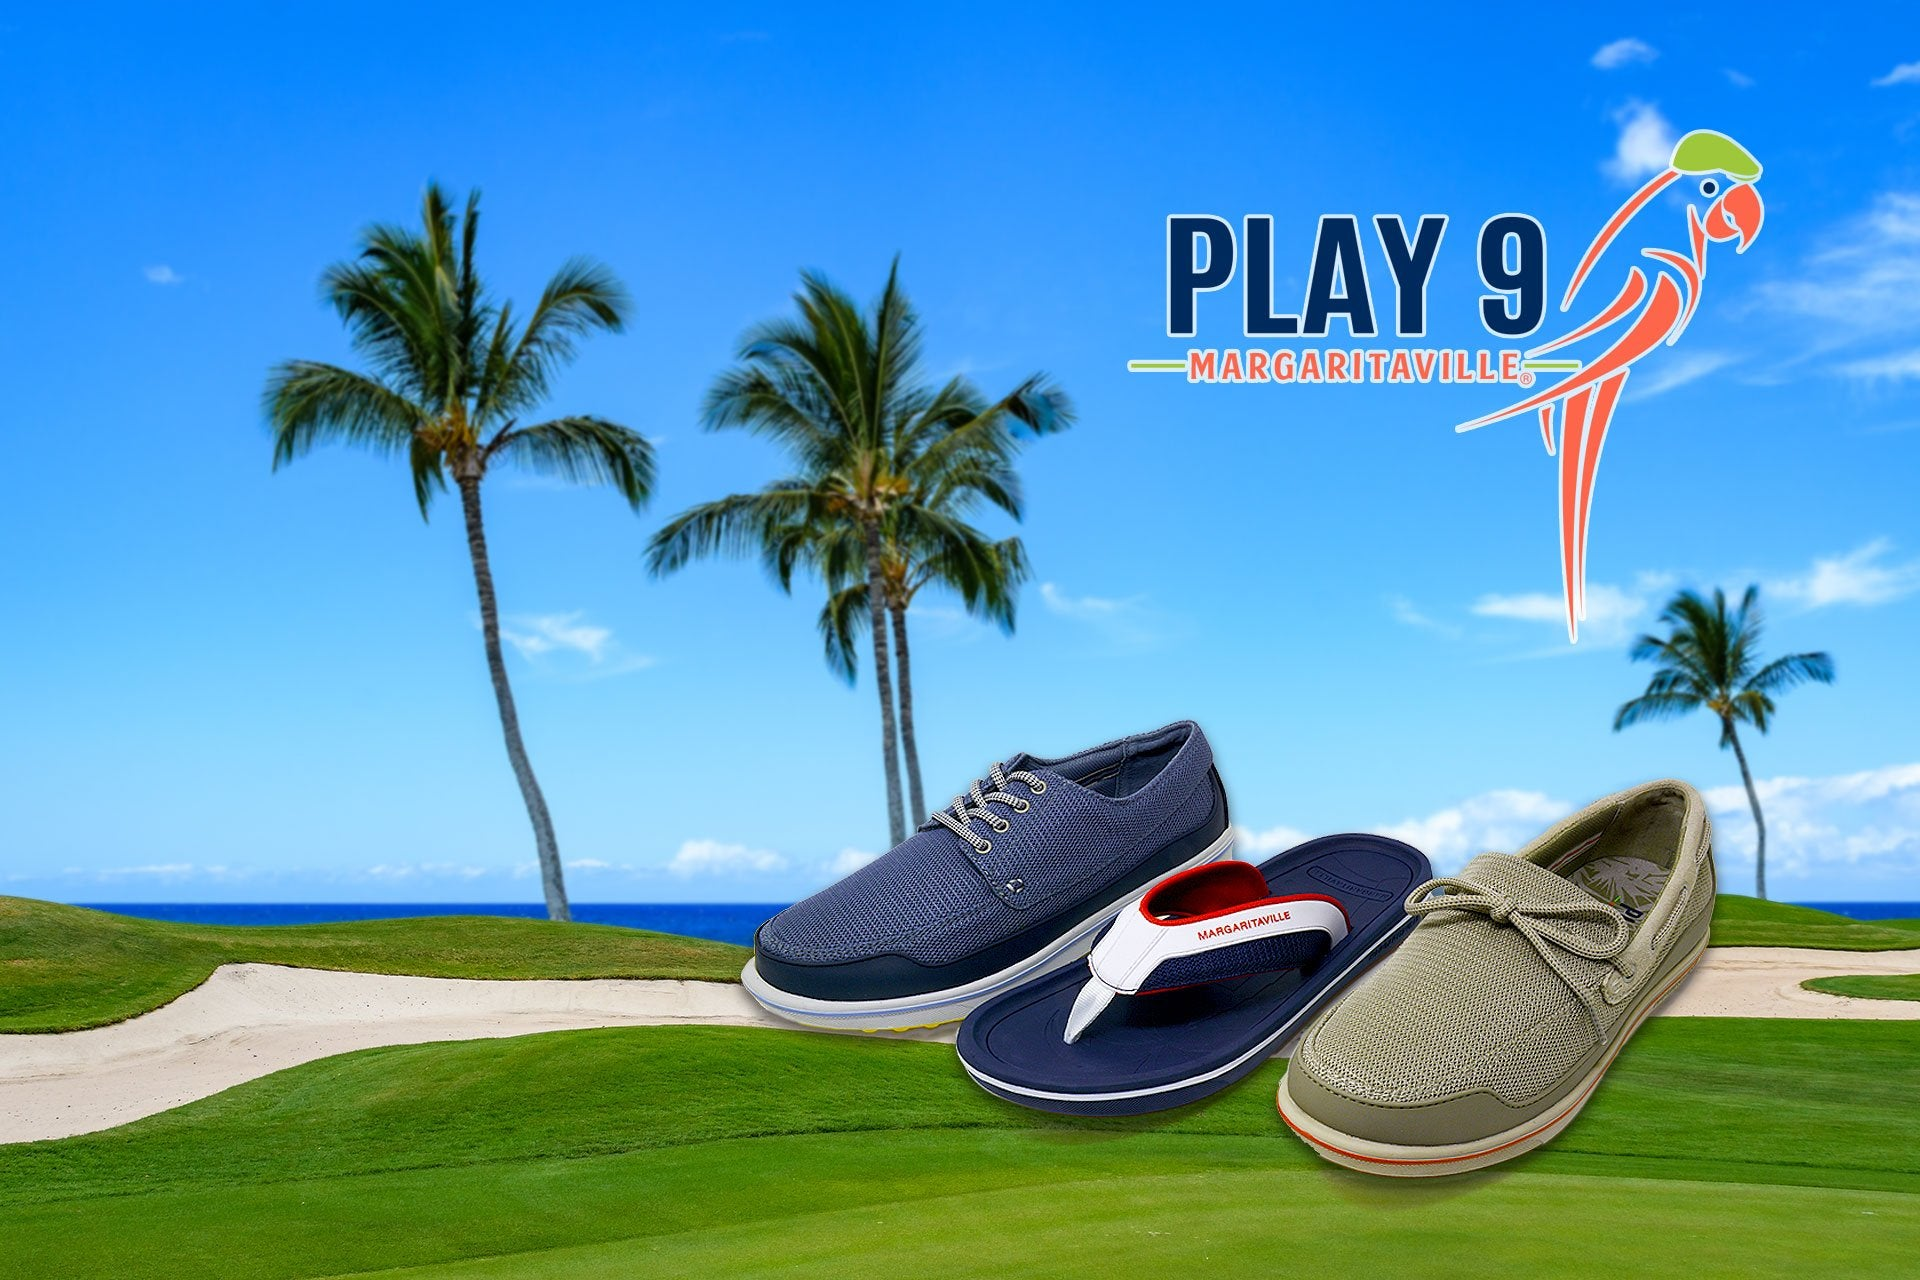 Margaritaville Golf Sandals and shoes